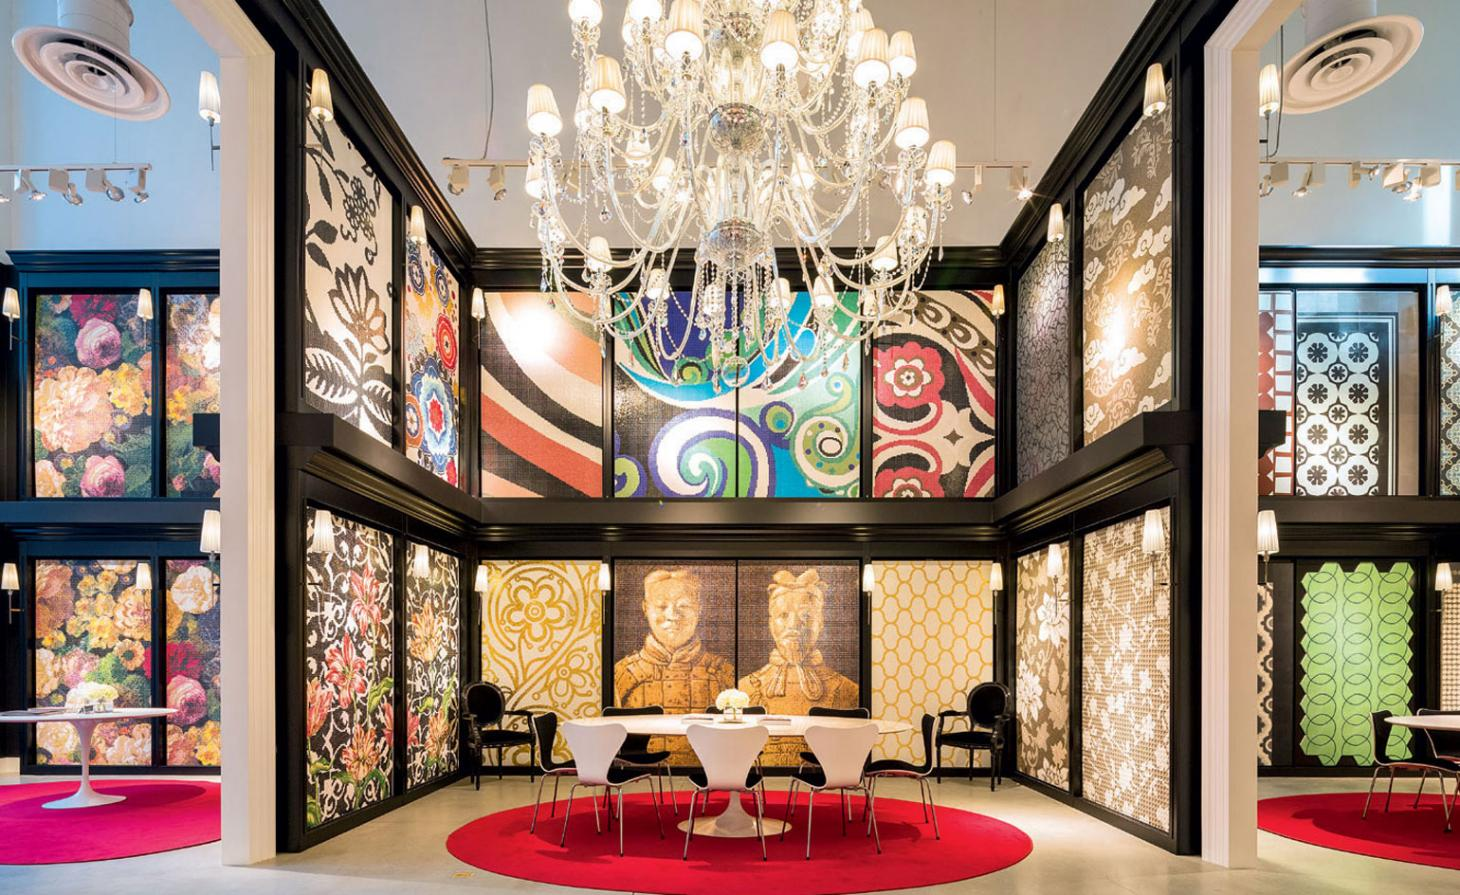 High style: Bisazza unveils monumental new Chelsea flagship